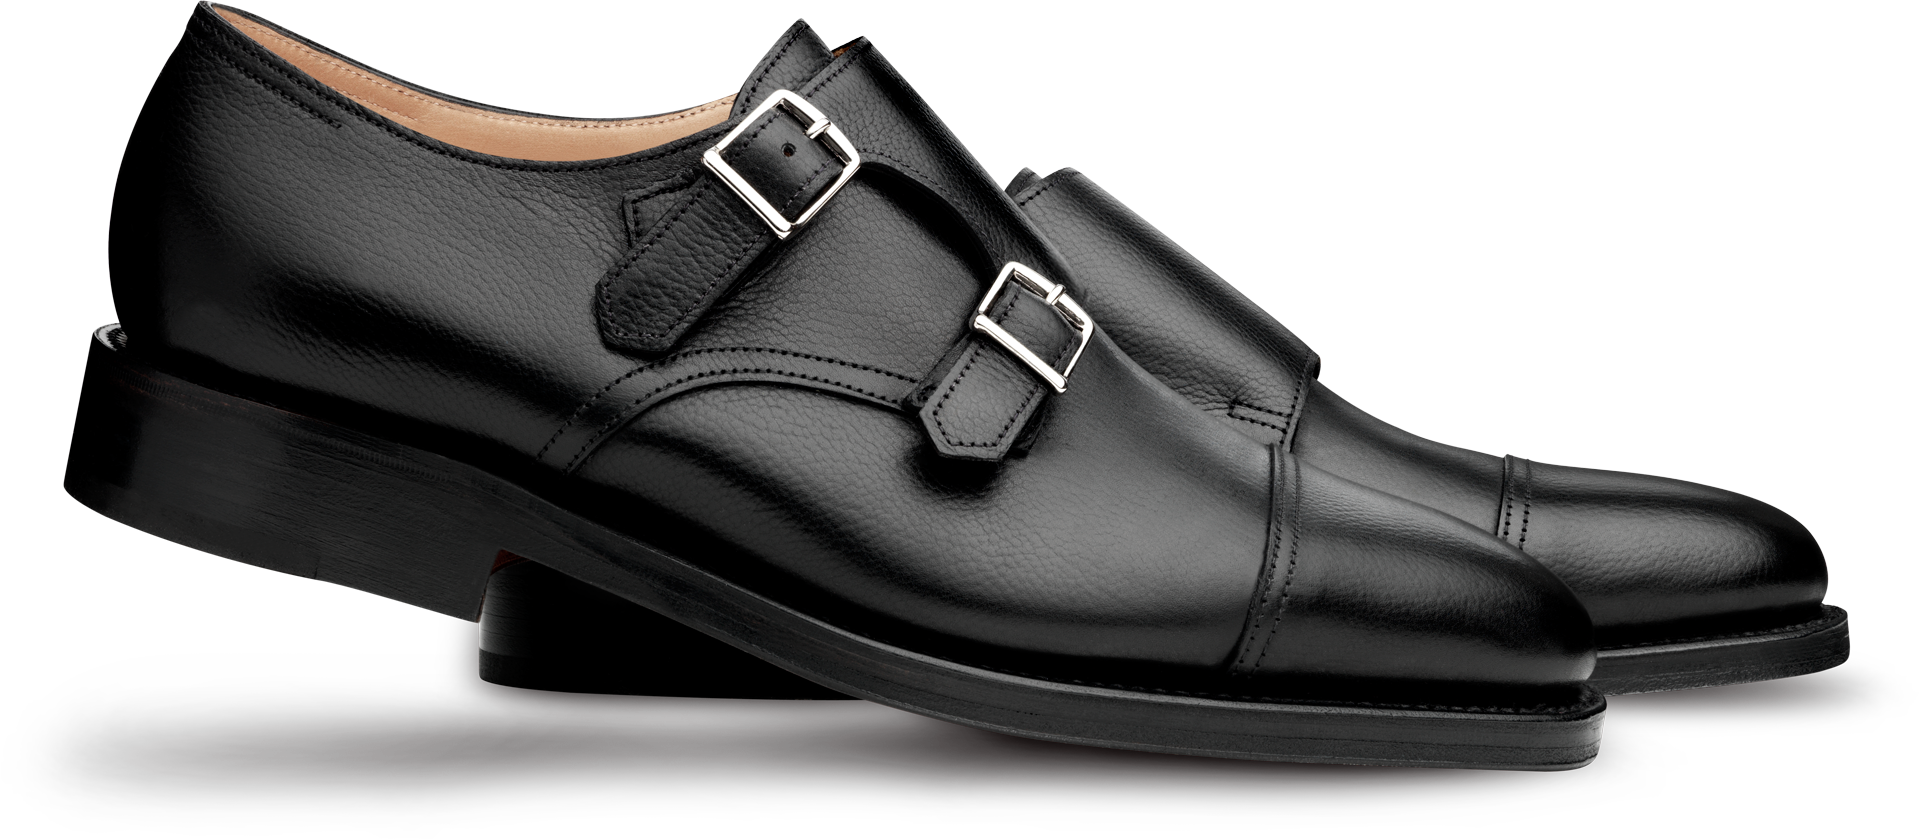 John Lobb Bootmaker Our Favorite Ready To Wear Shoe